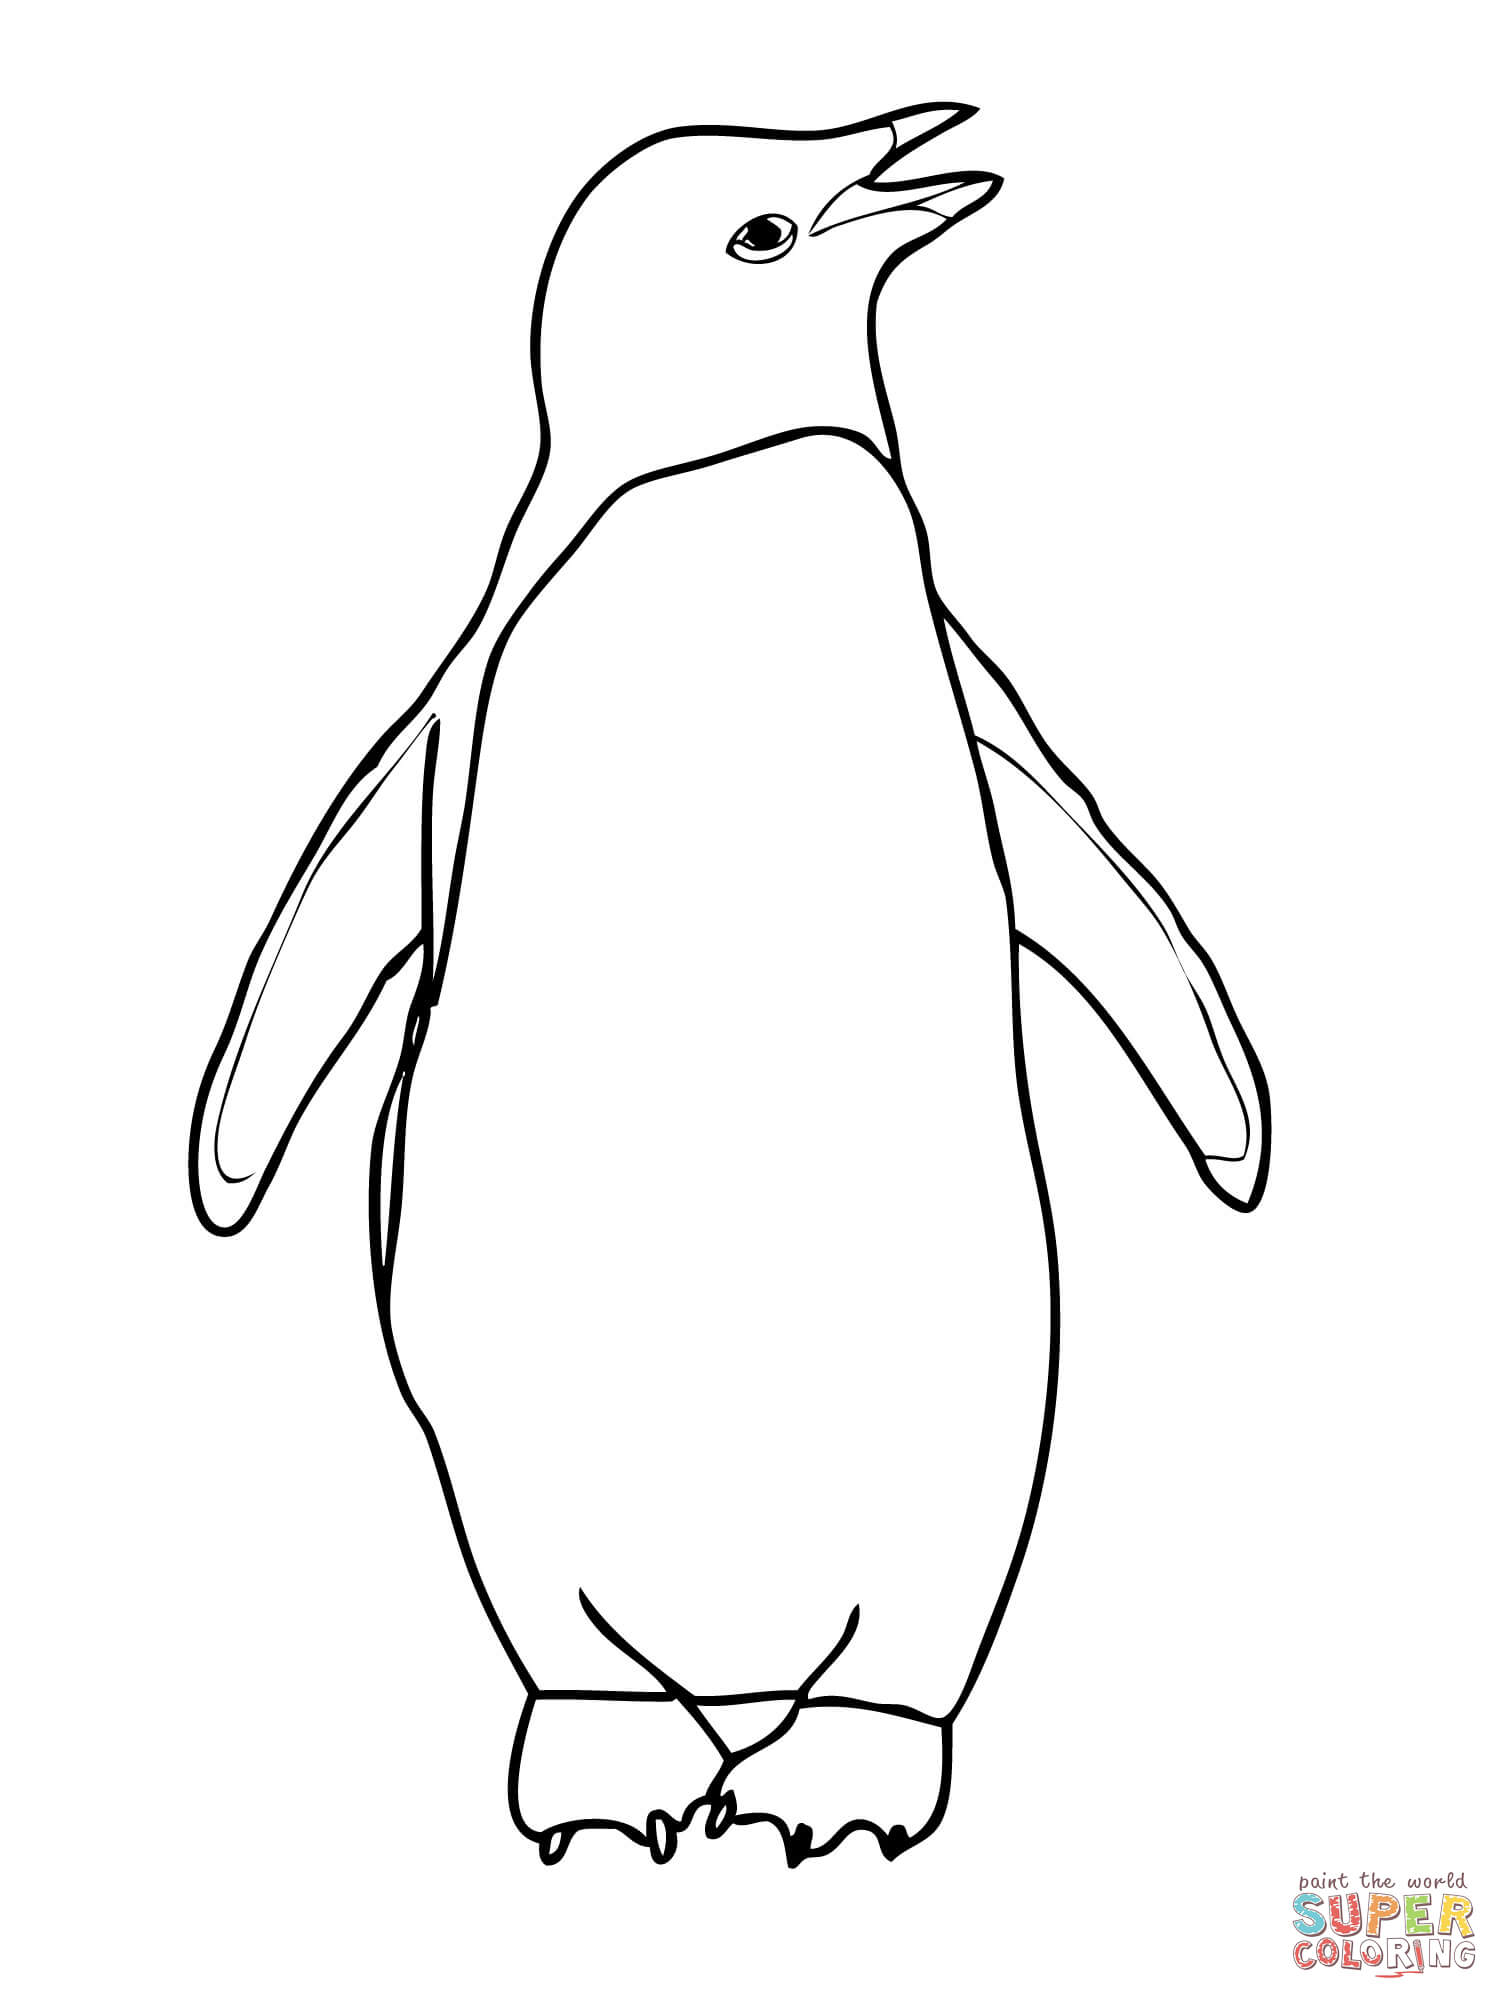 Adelie Penguin clipart #19, Download drawings